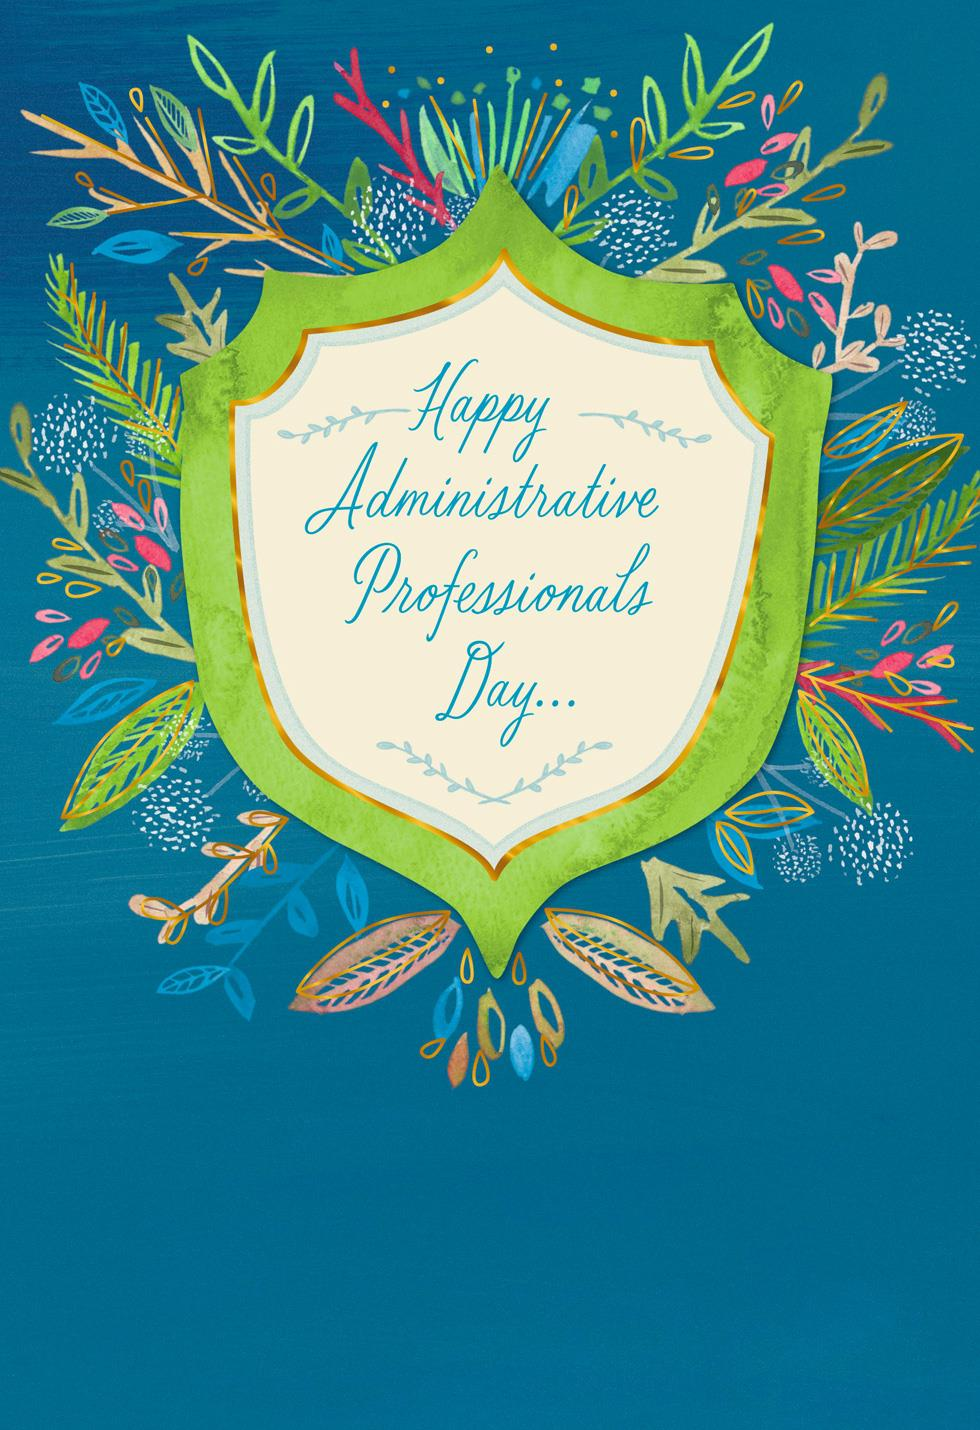 Flower Badge Admin Professionals Day Card - Greeting Cards ...